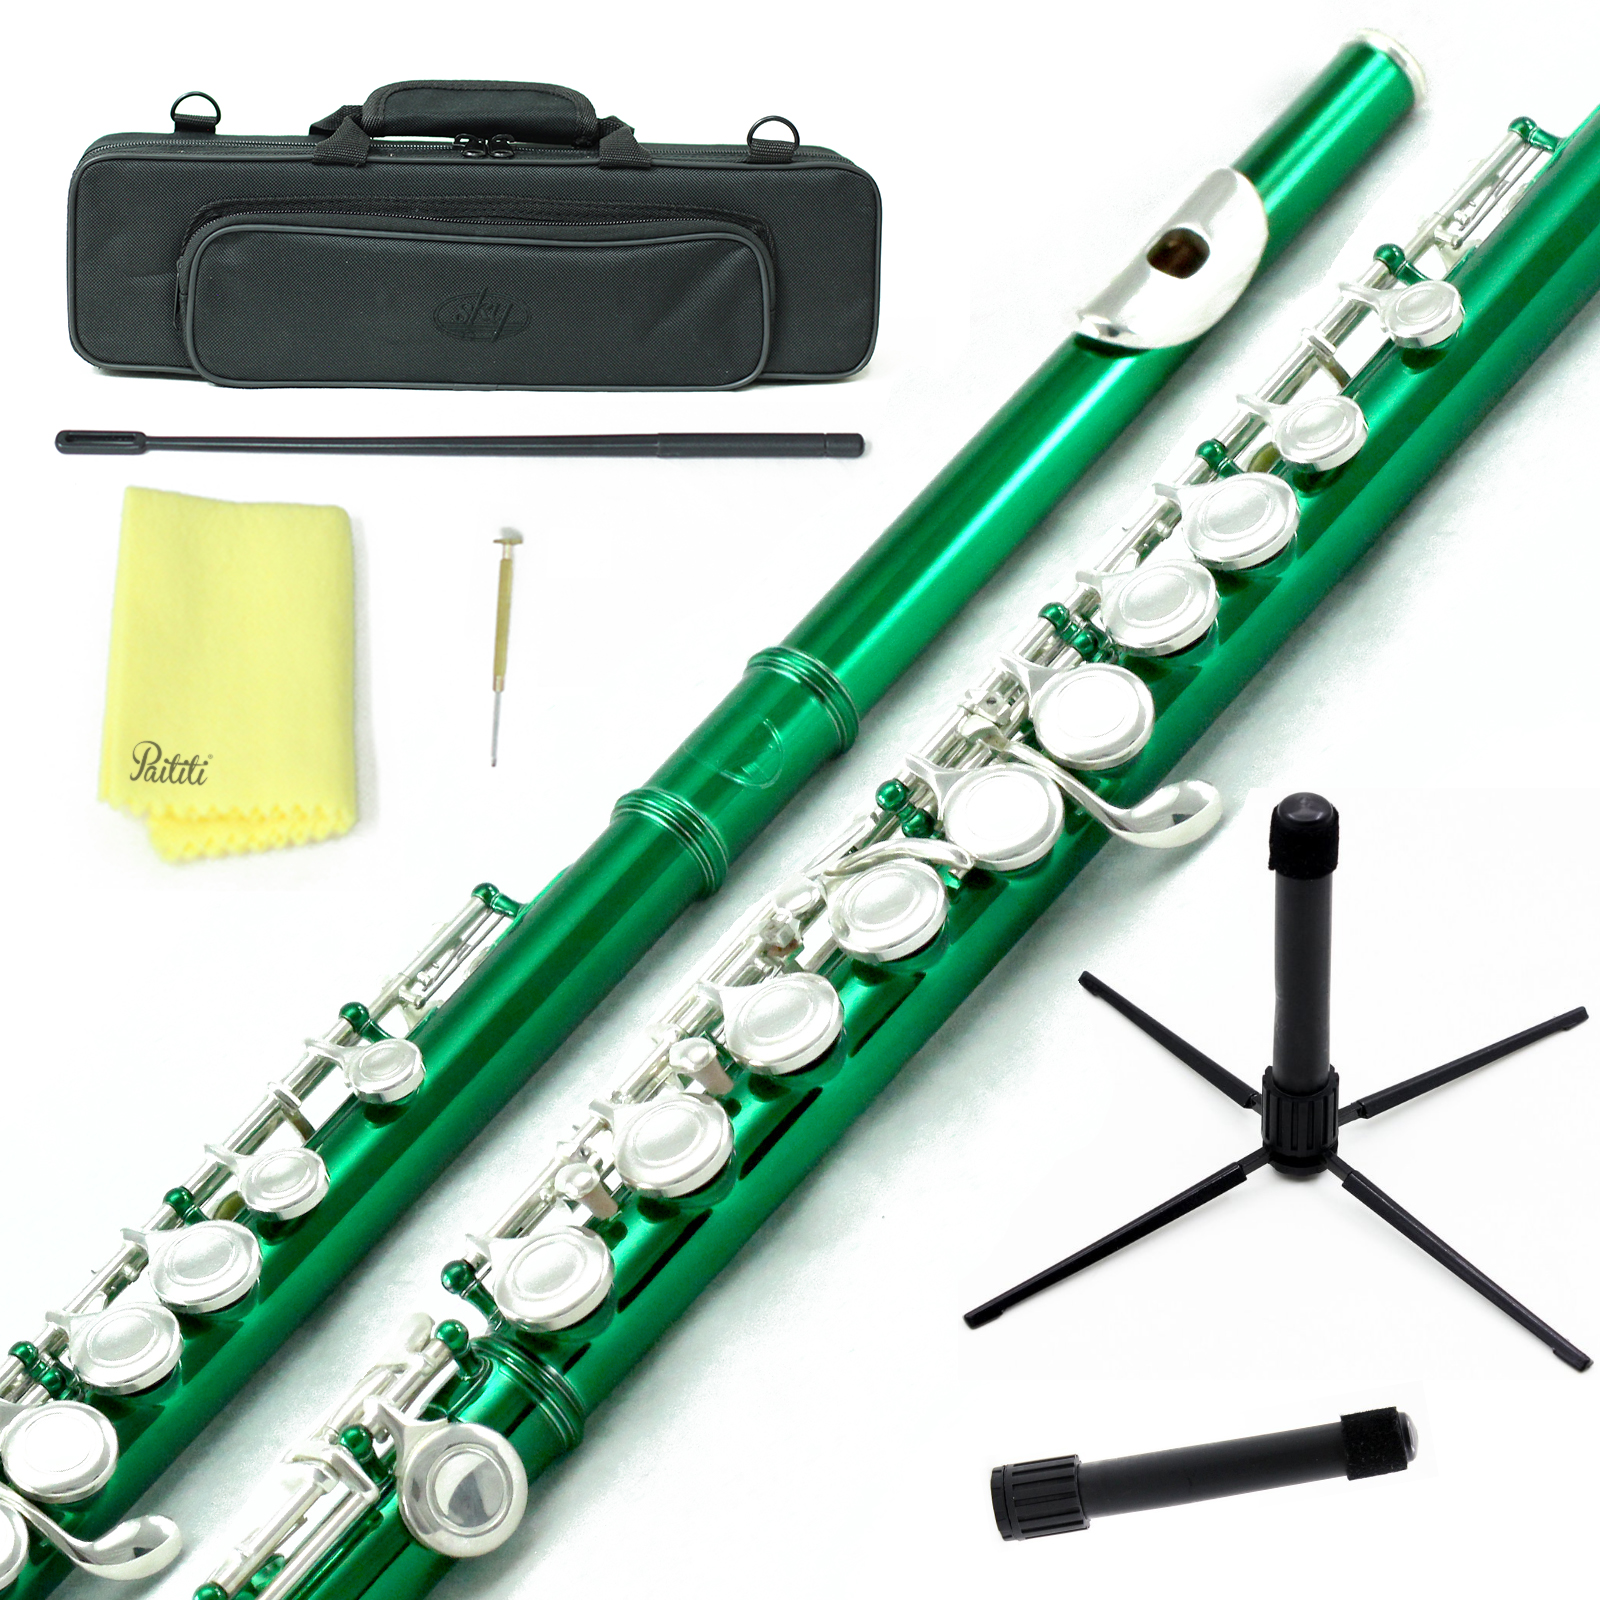 Sky Closed Hole C Flute with Lightweight Case, Cleaning Rod, Cloth, Joint Grease and Screw Driver - Green Silver